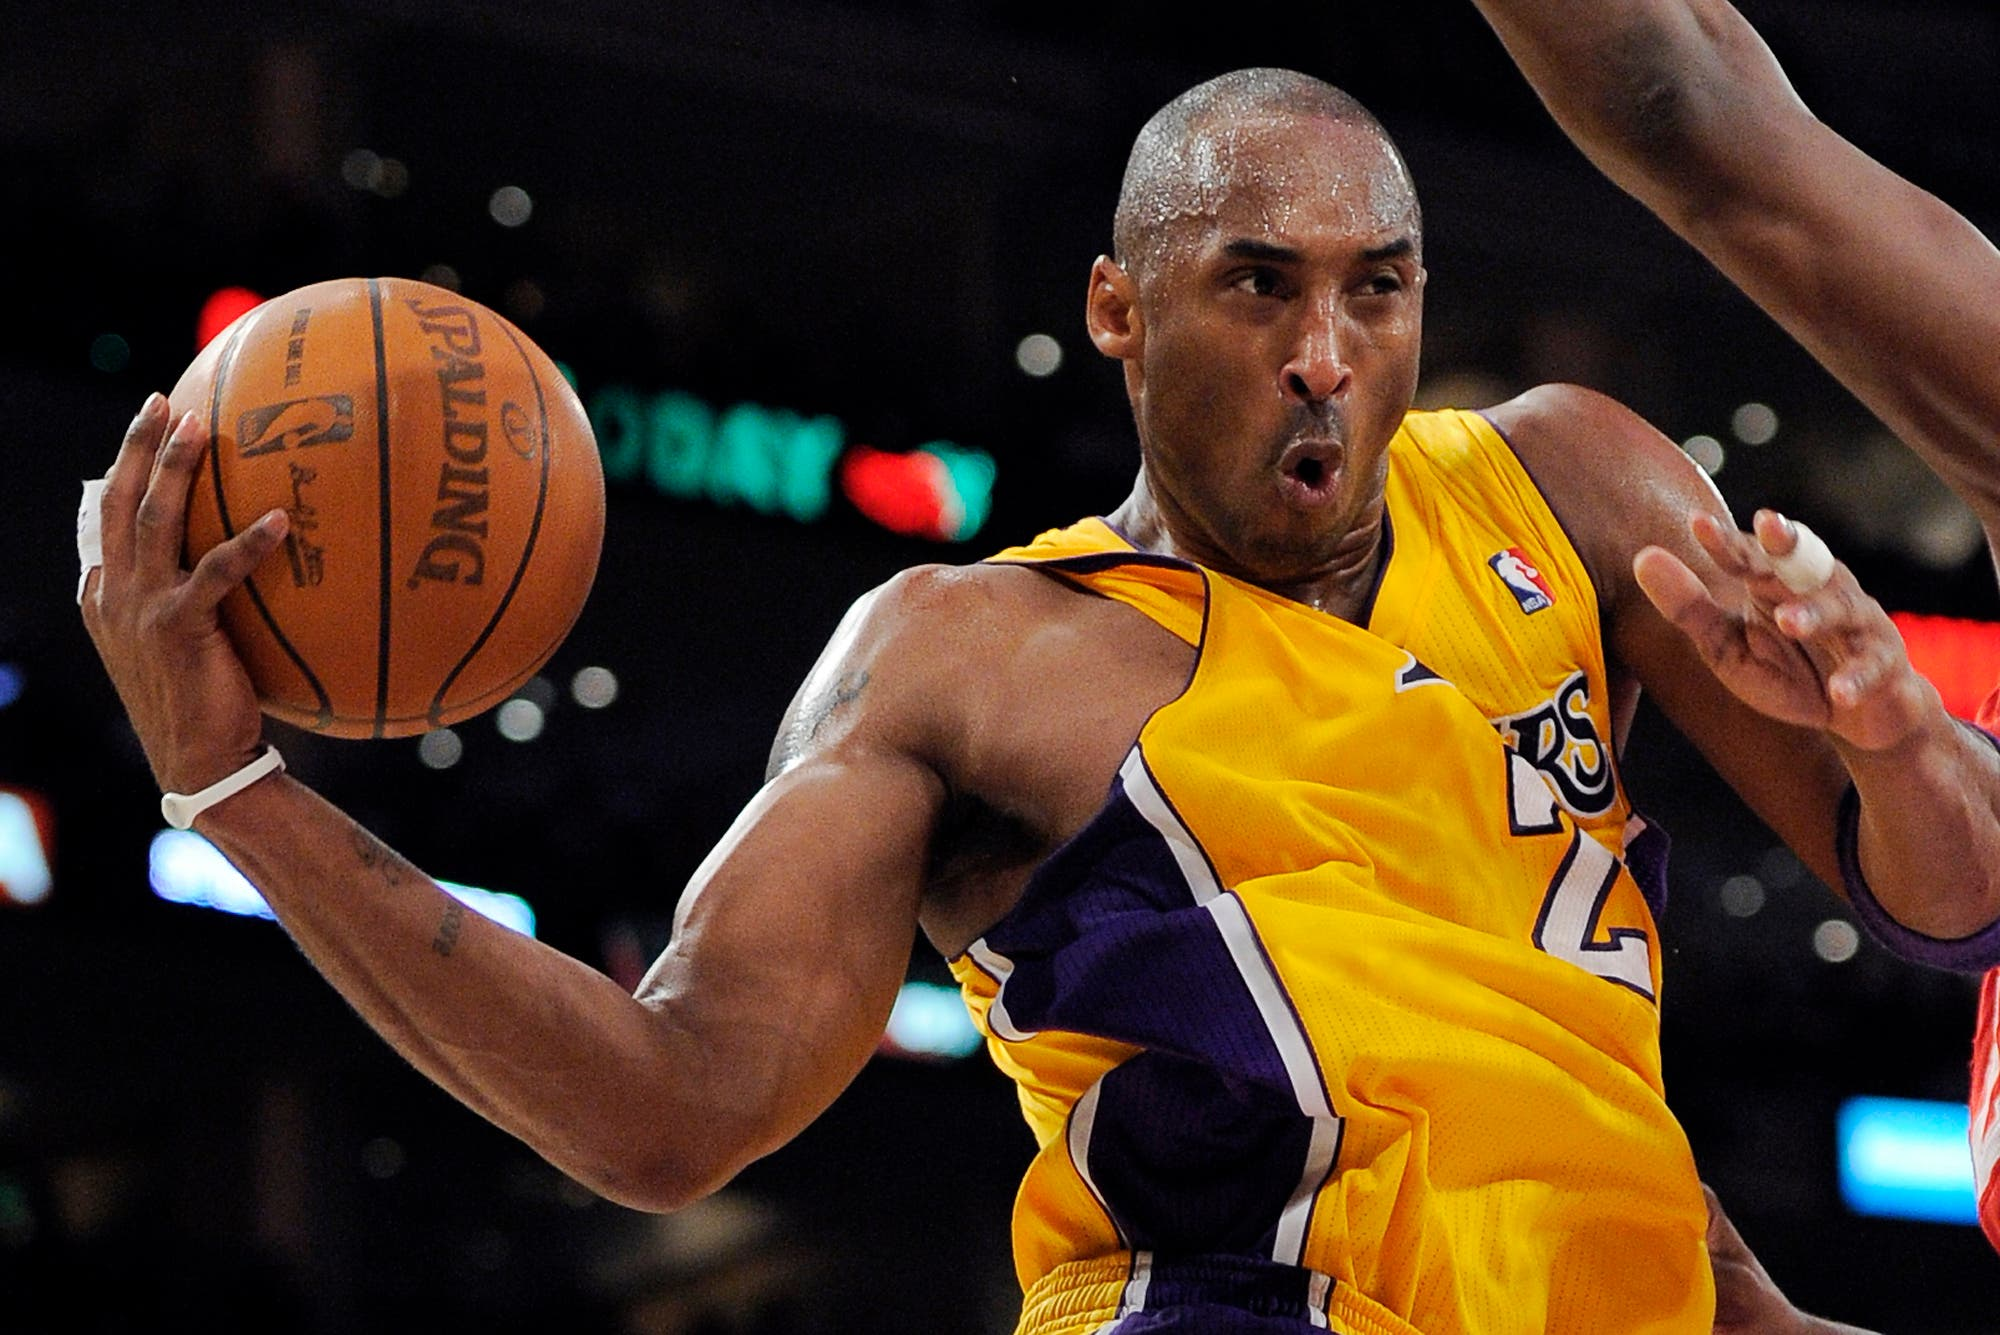 Kobe Bryant goes up for a shot during the second half of their NBA basketball game against the Philadelphia 76ers, Friday, Dec. 31, 2010, in Los Angeles. (AP)